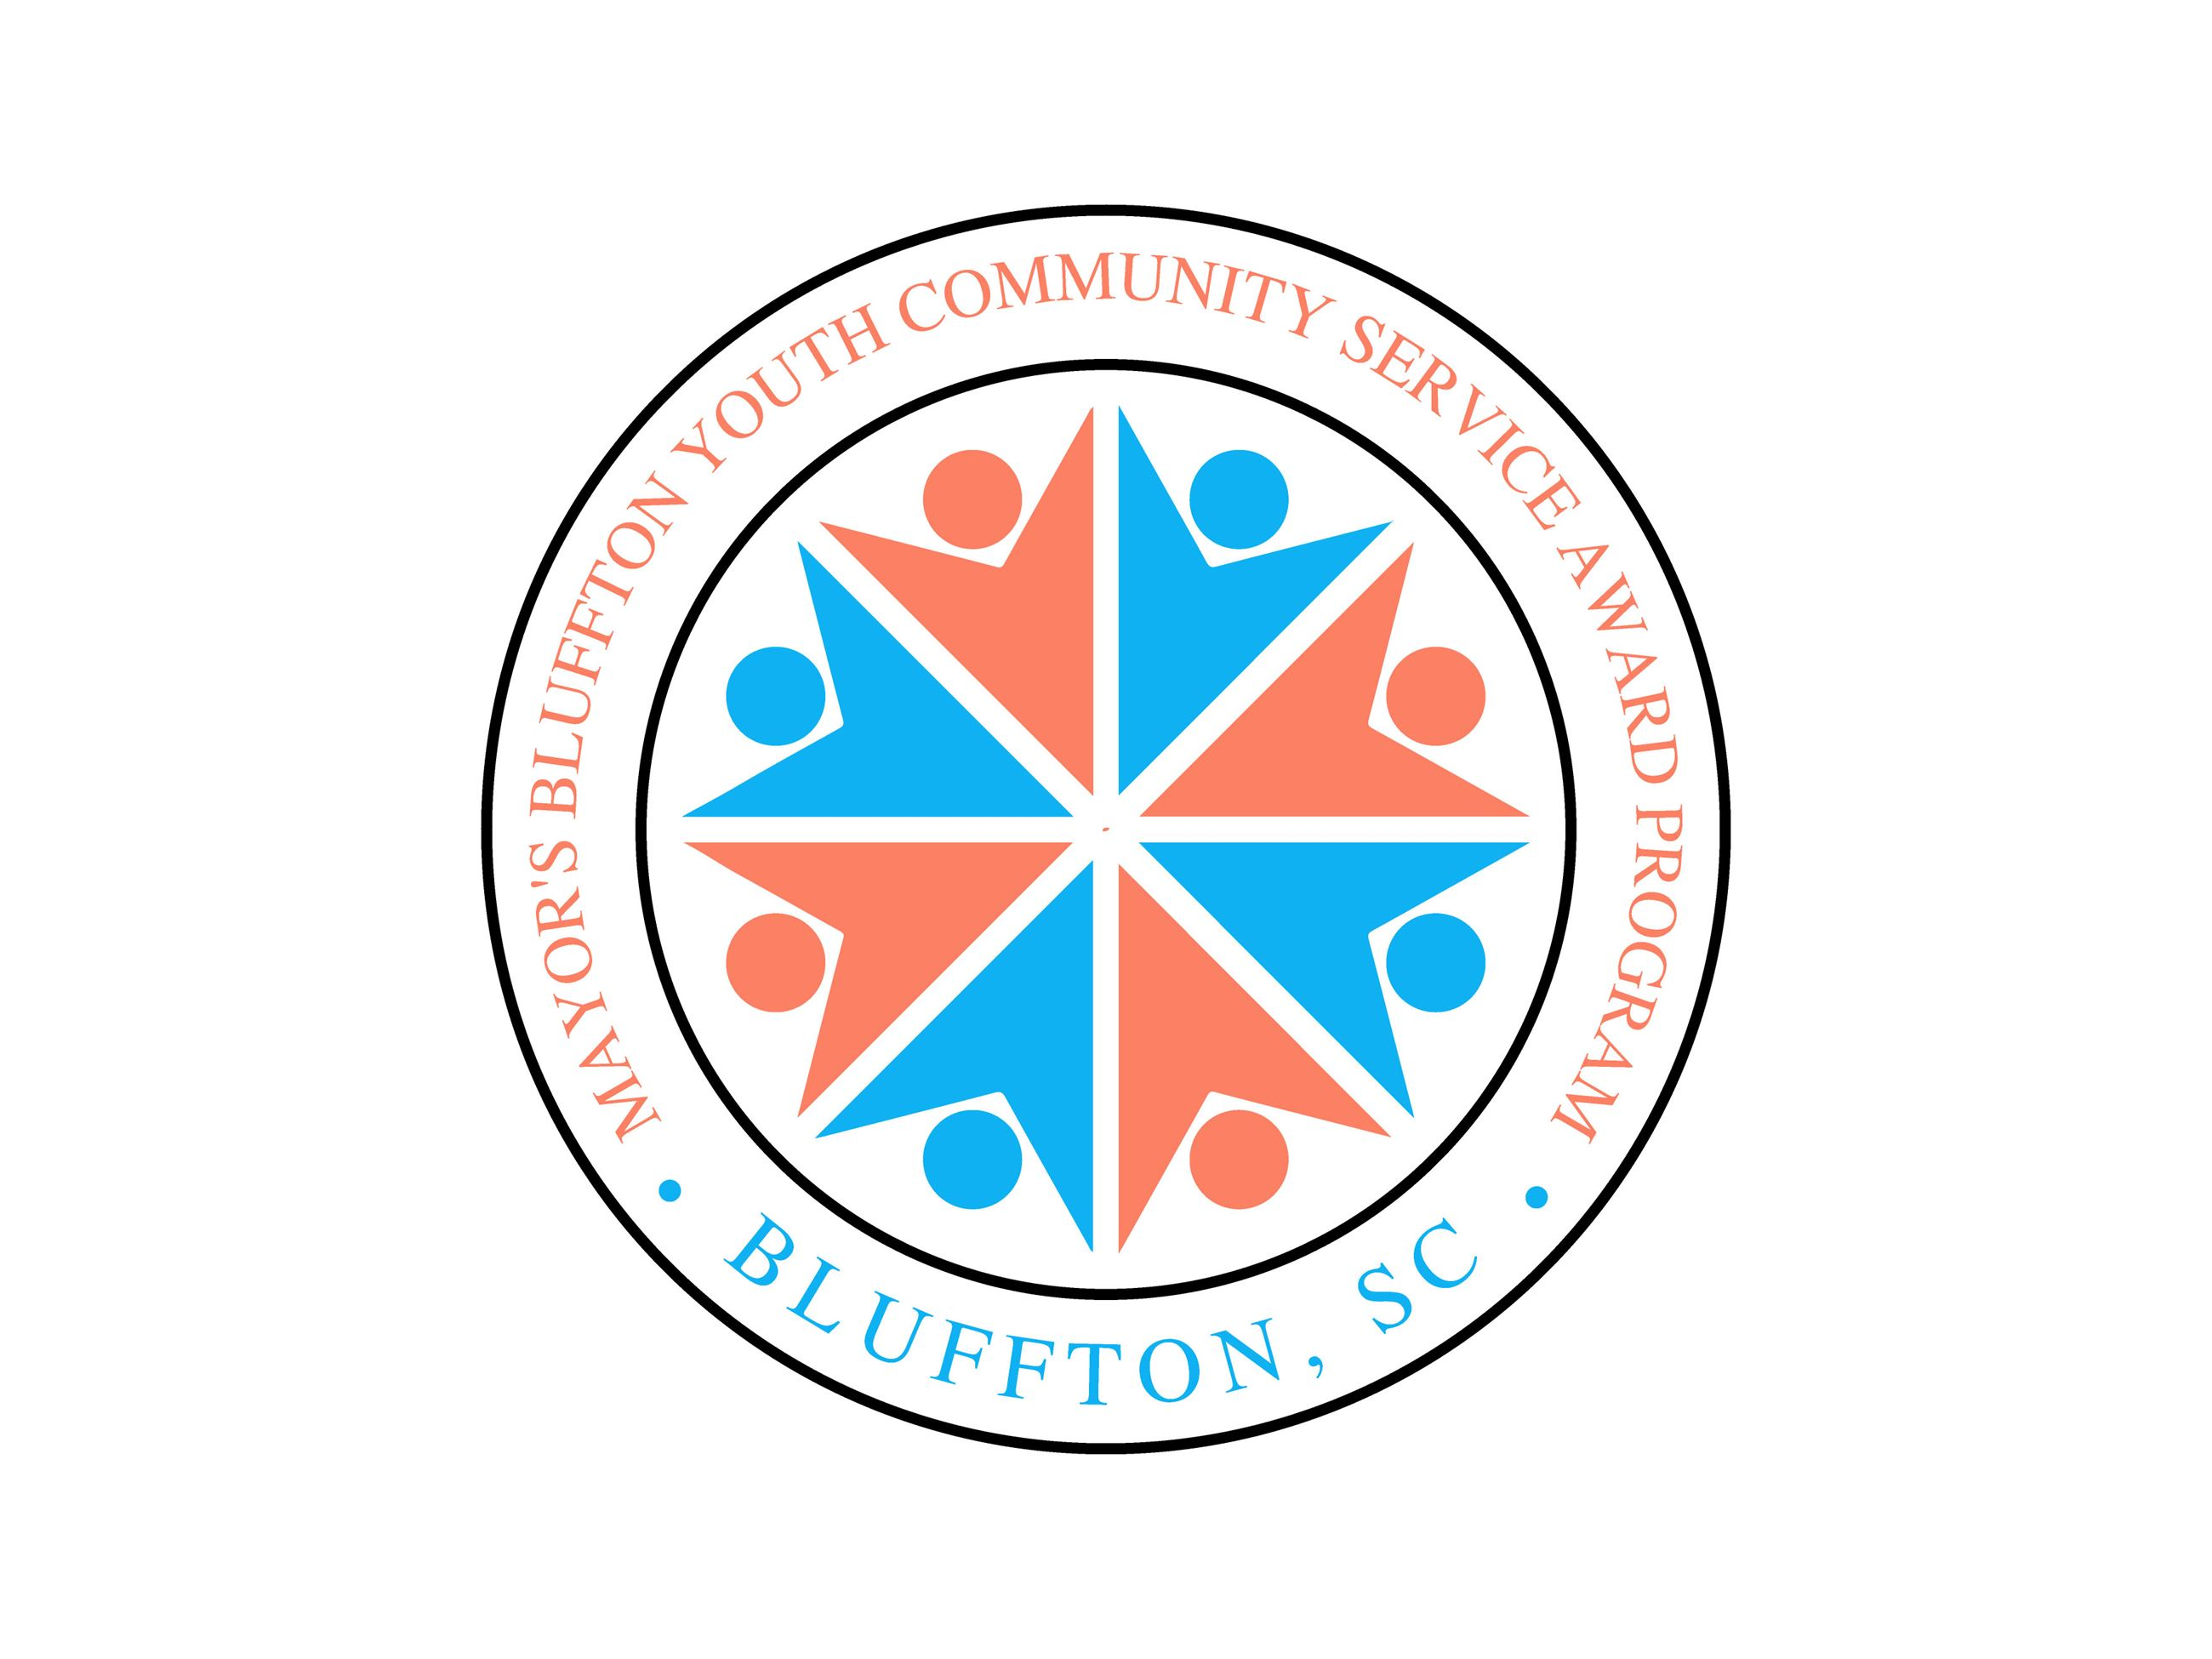 Mayor's Bluffton Youth Community Service Award Program logo